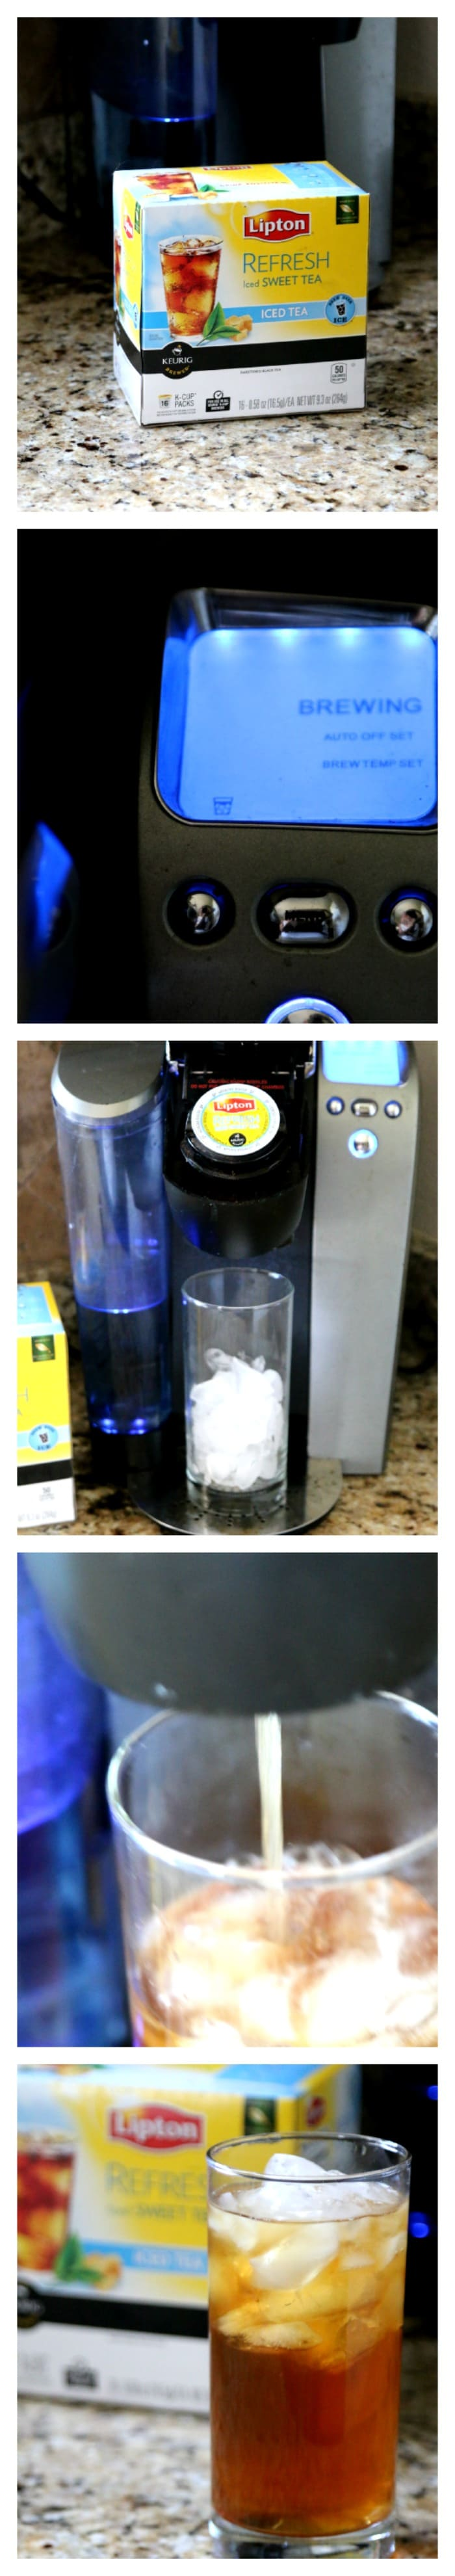 iced tea brewed on keurig